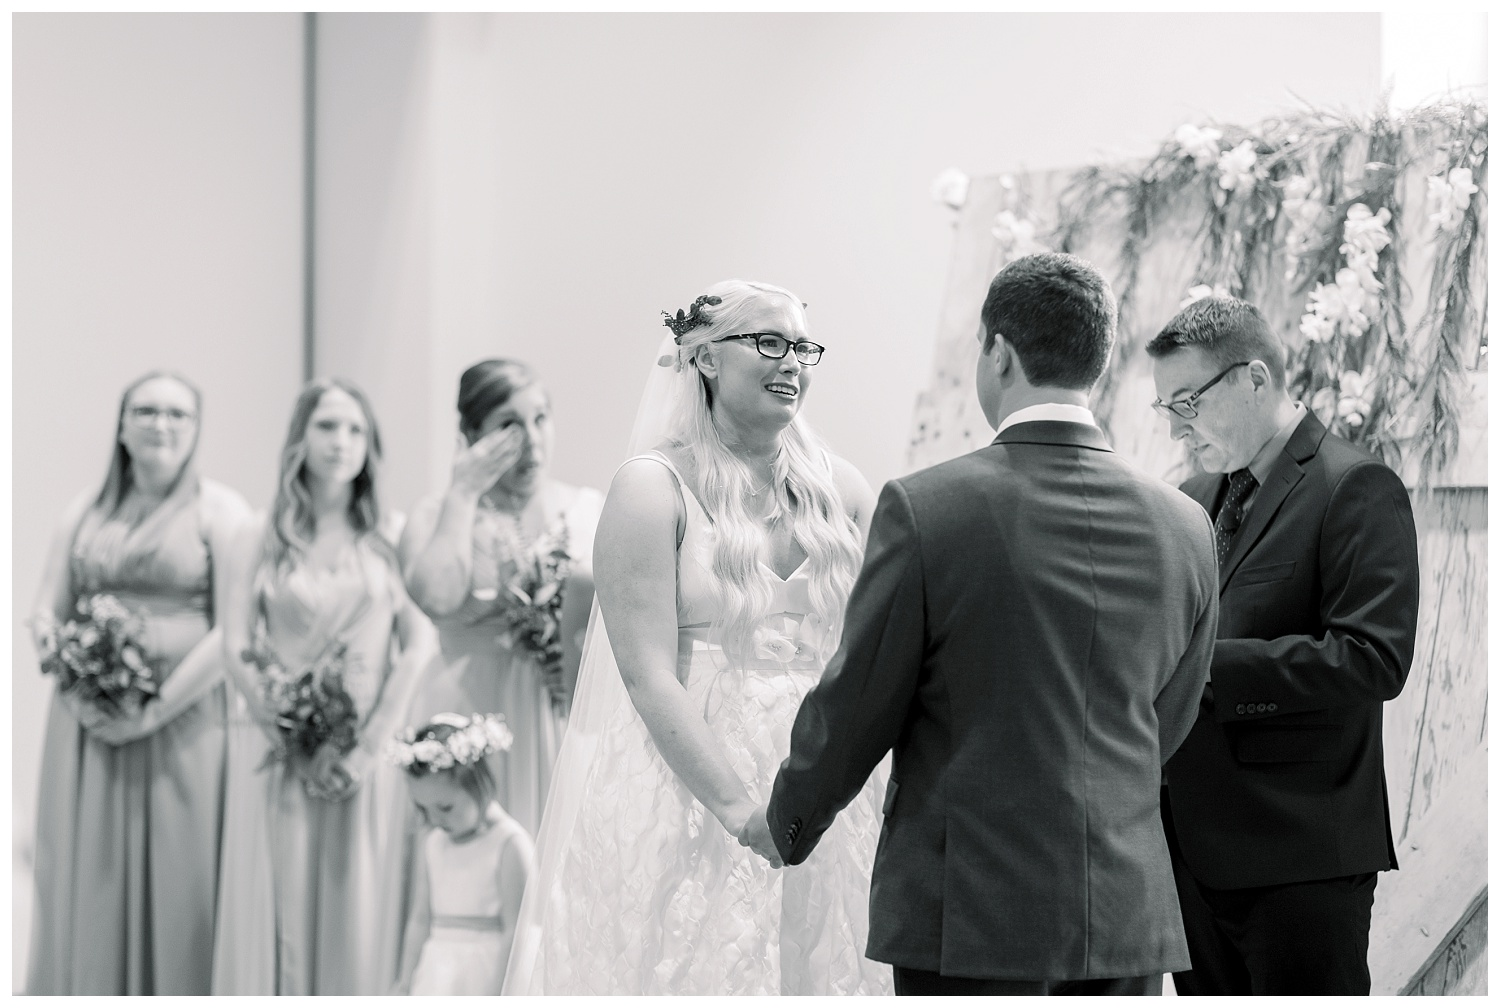 Wedding Ceremony at Johnson County Arts and Heritage